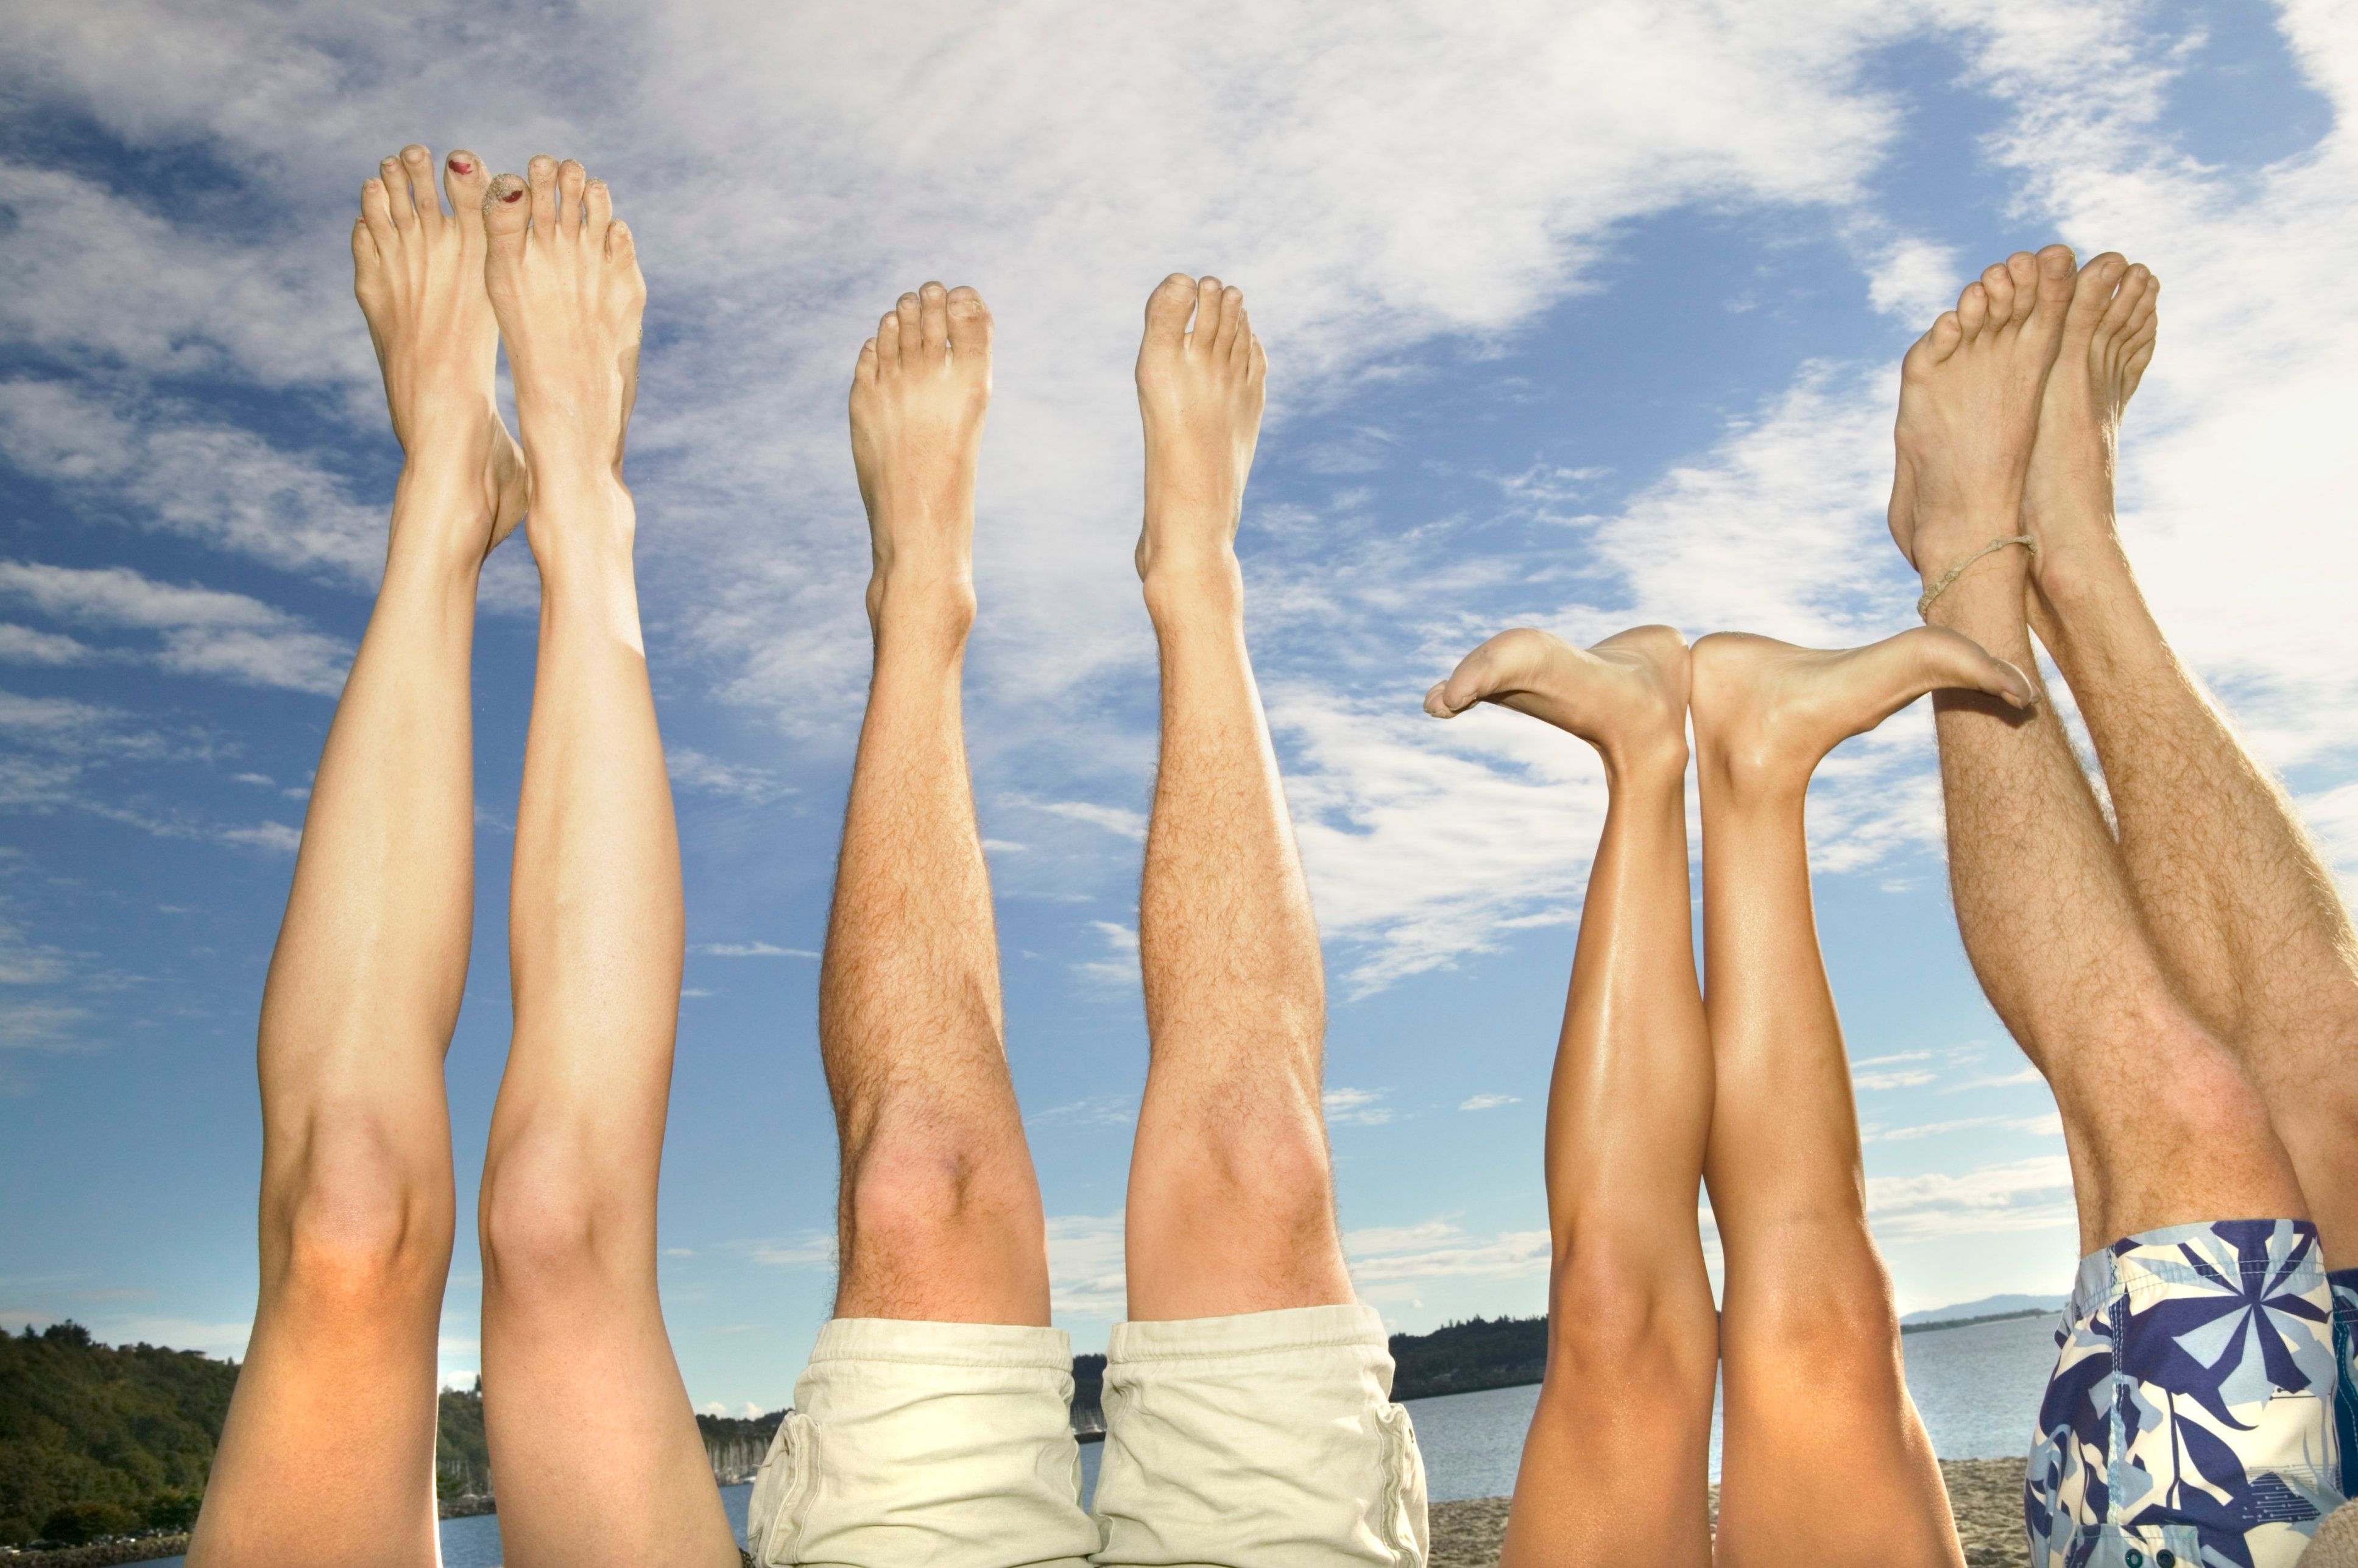 According to a new study, having long legs could up men's risk for colorectal cancer.